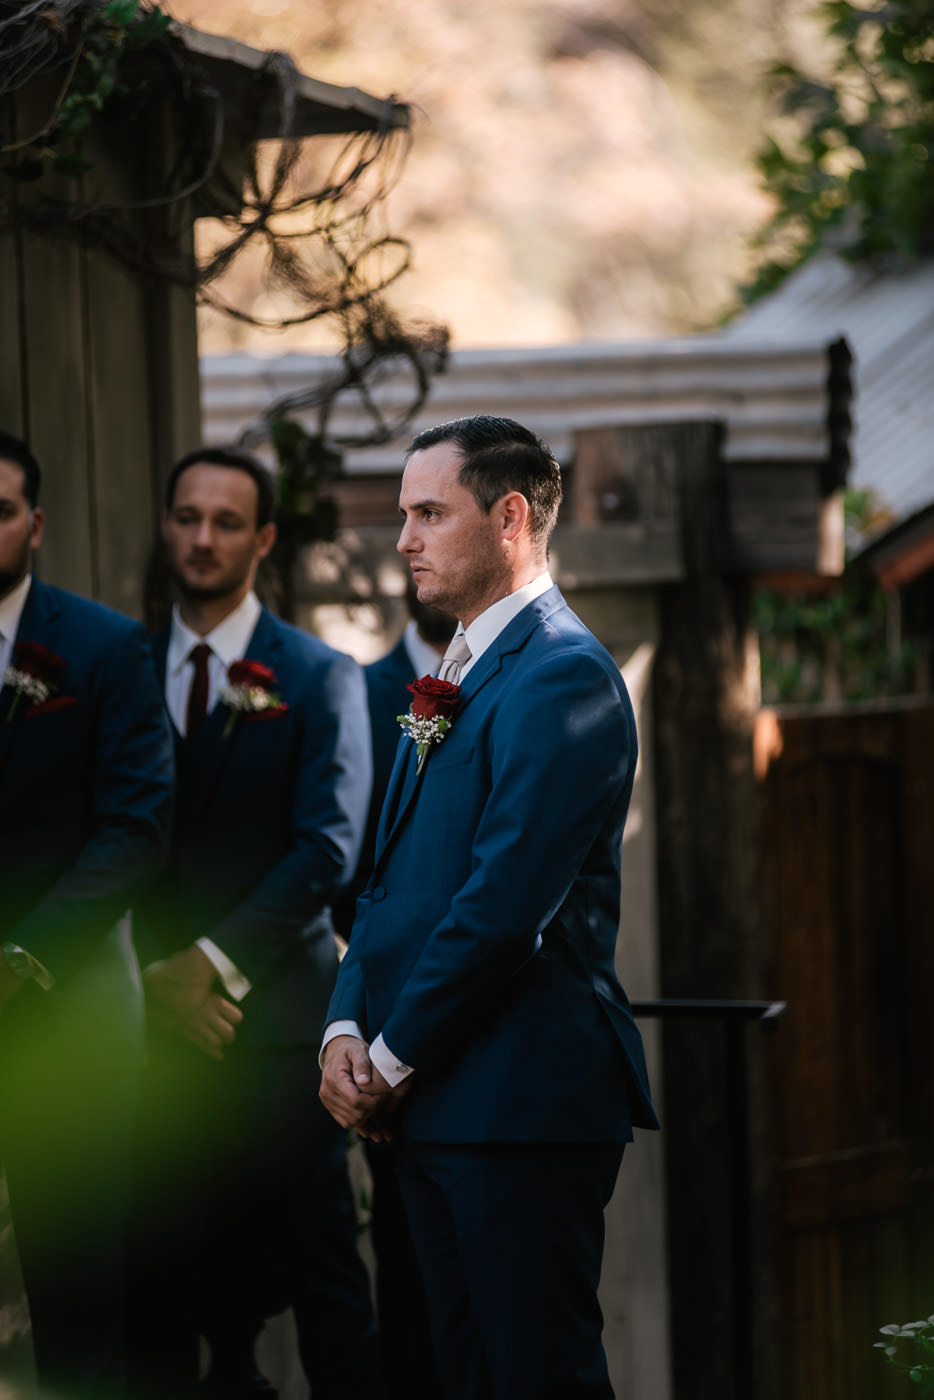 Groom wears a stylish blue suit at his marriage ceremony.